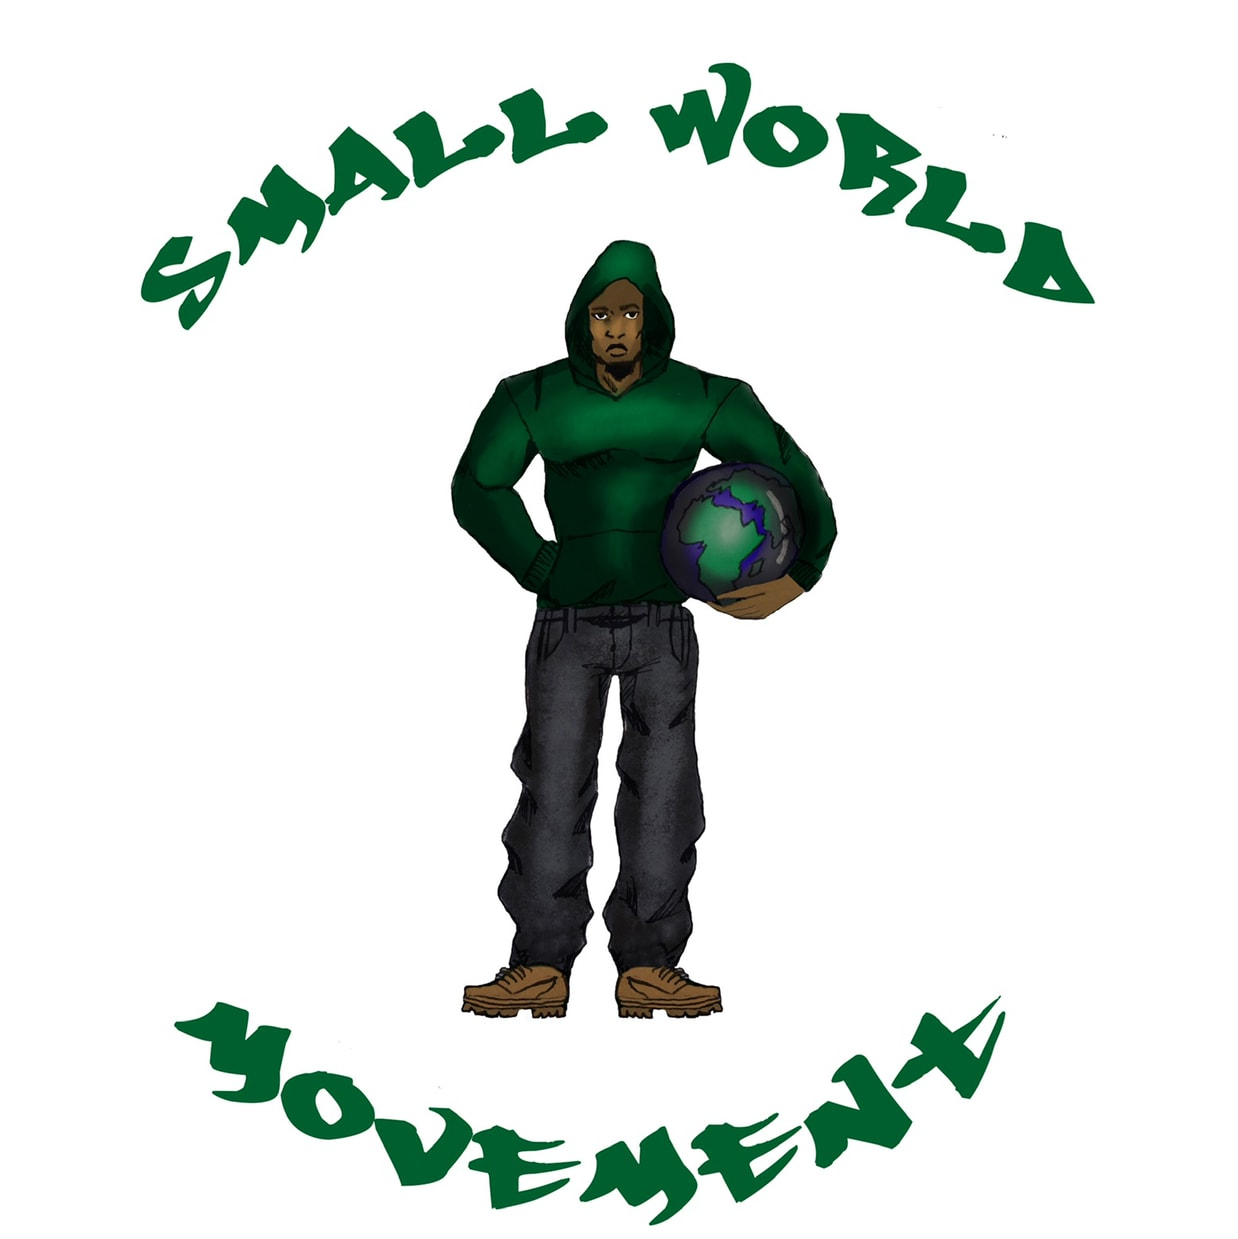 Small World Movement Llc